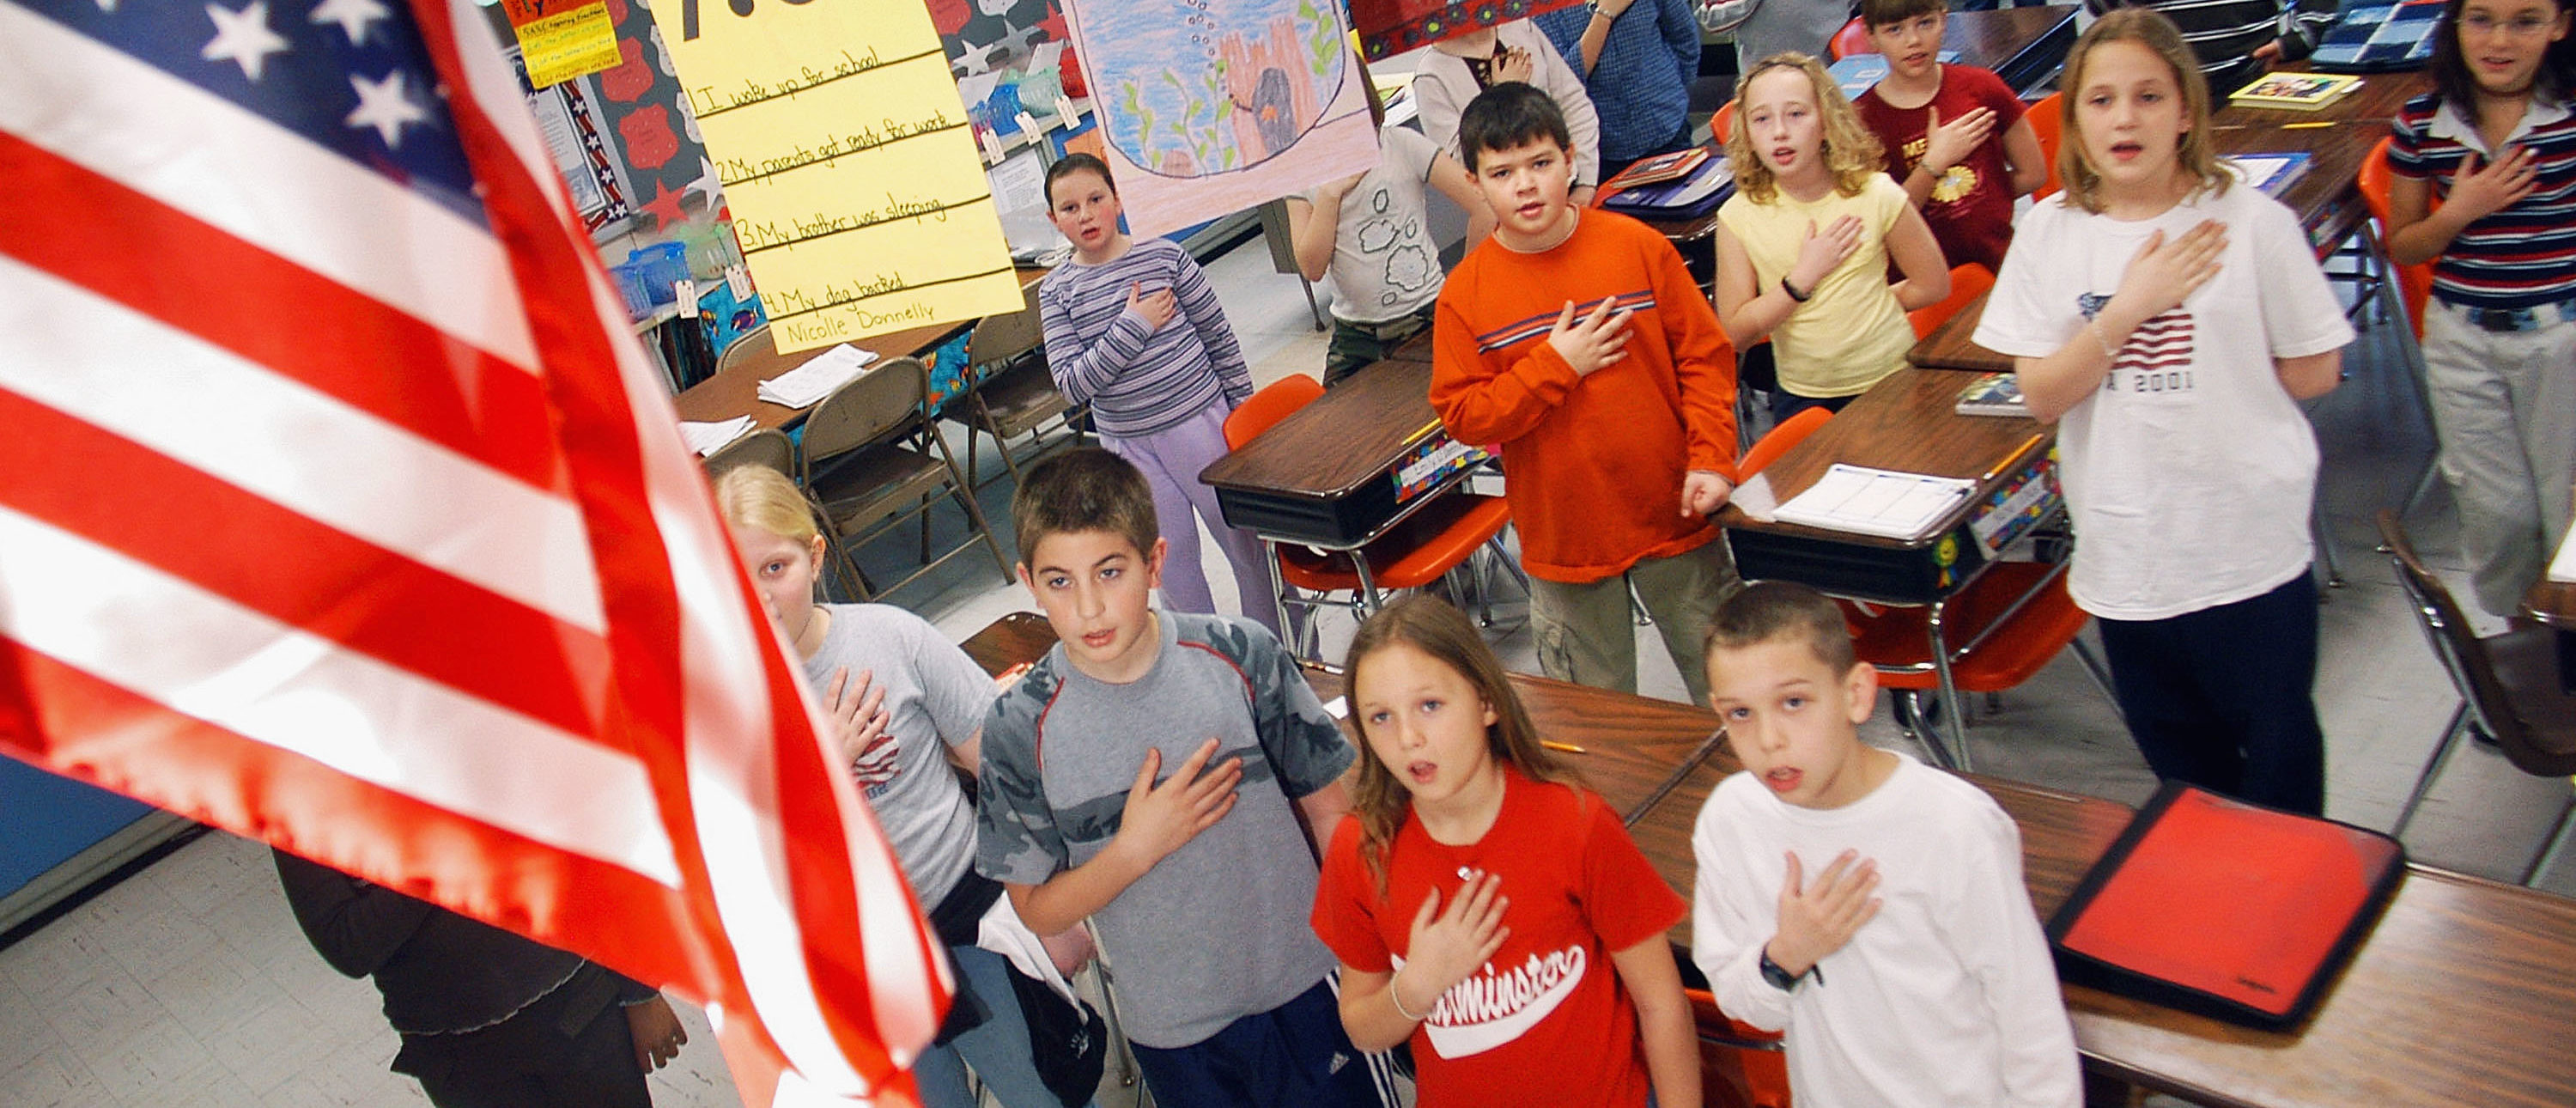 Fourth graders at Longstreth Elementary School pledge allegiance to the flag March 24, 2004 in Warminster, Pennsylvania. (Photo by William Thomas Cain/Getty Images)